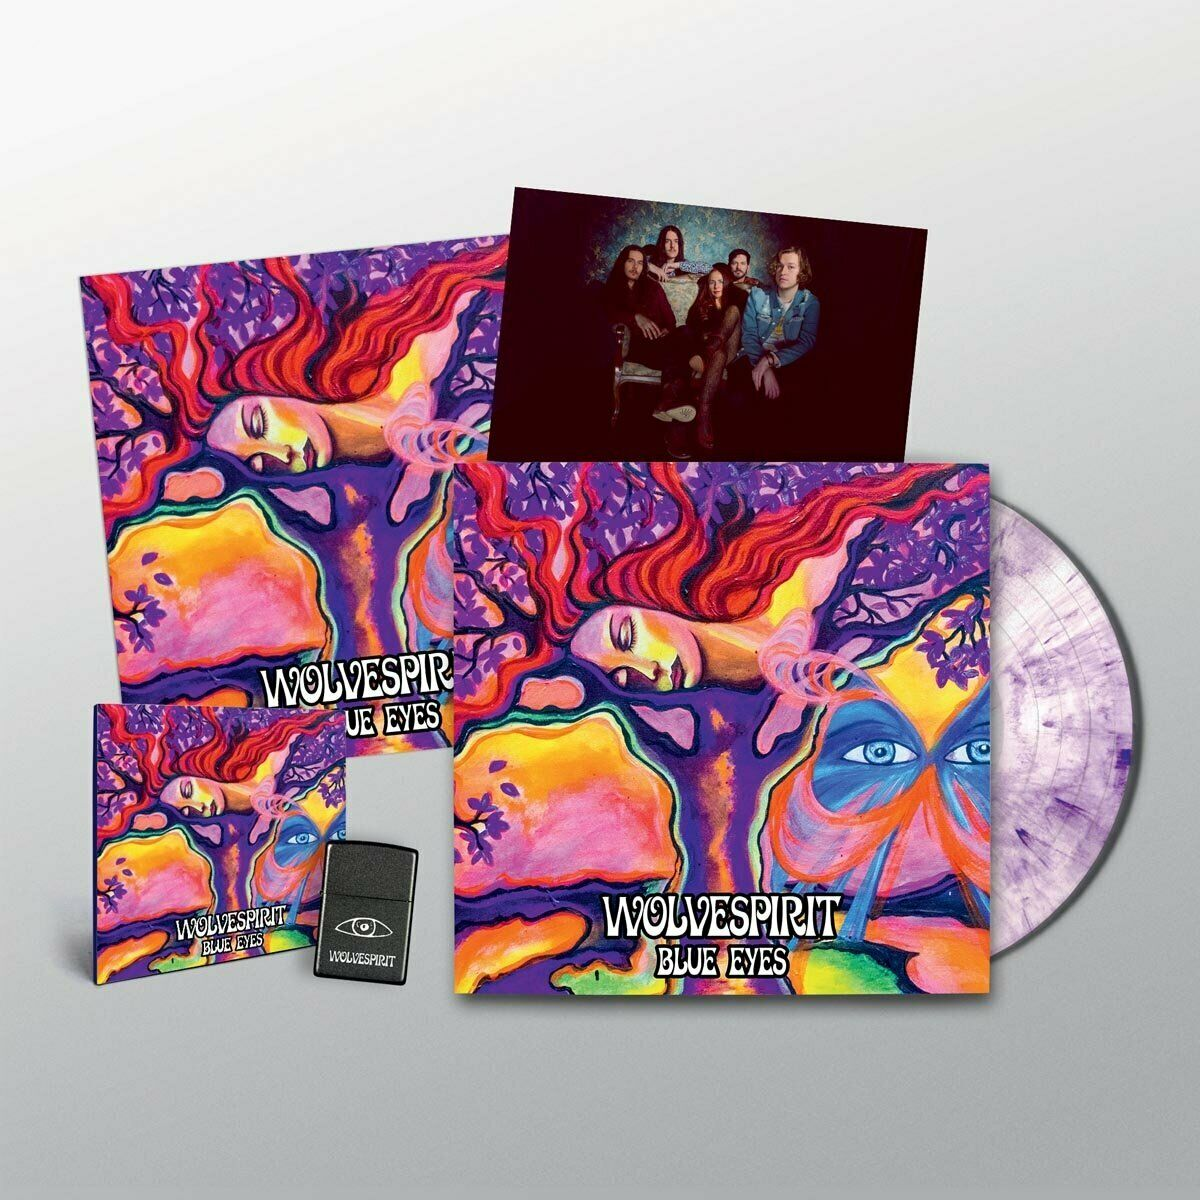 Blue Eyes Limited Deluxe Box Set Vinyl LP von WolveSpirit 180g Purple